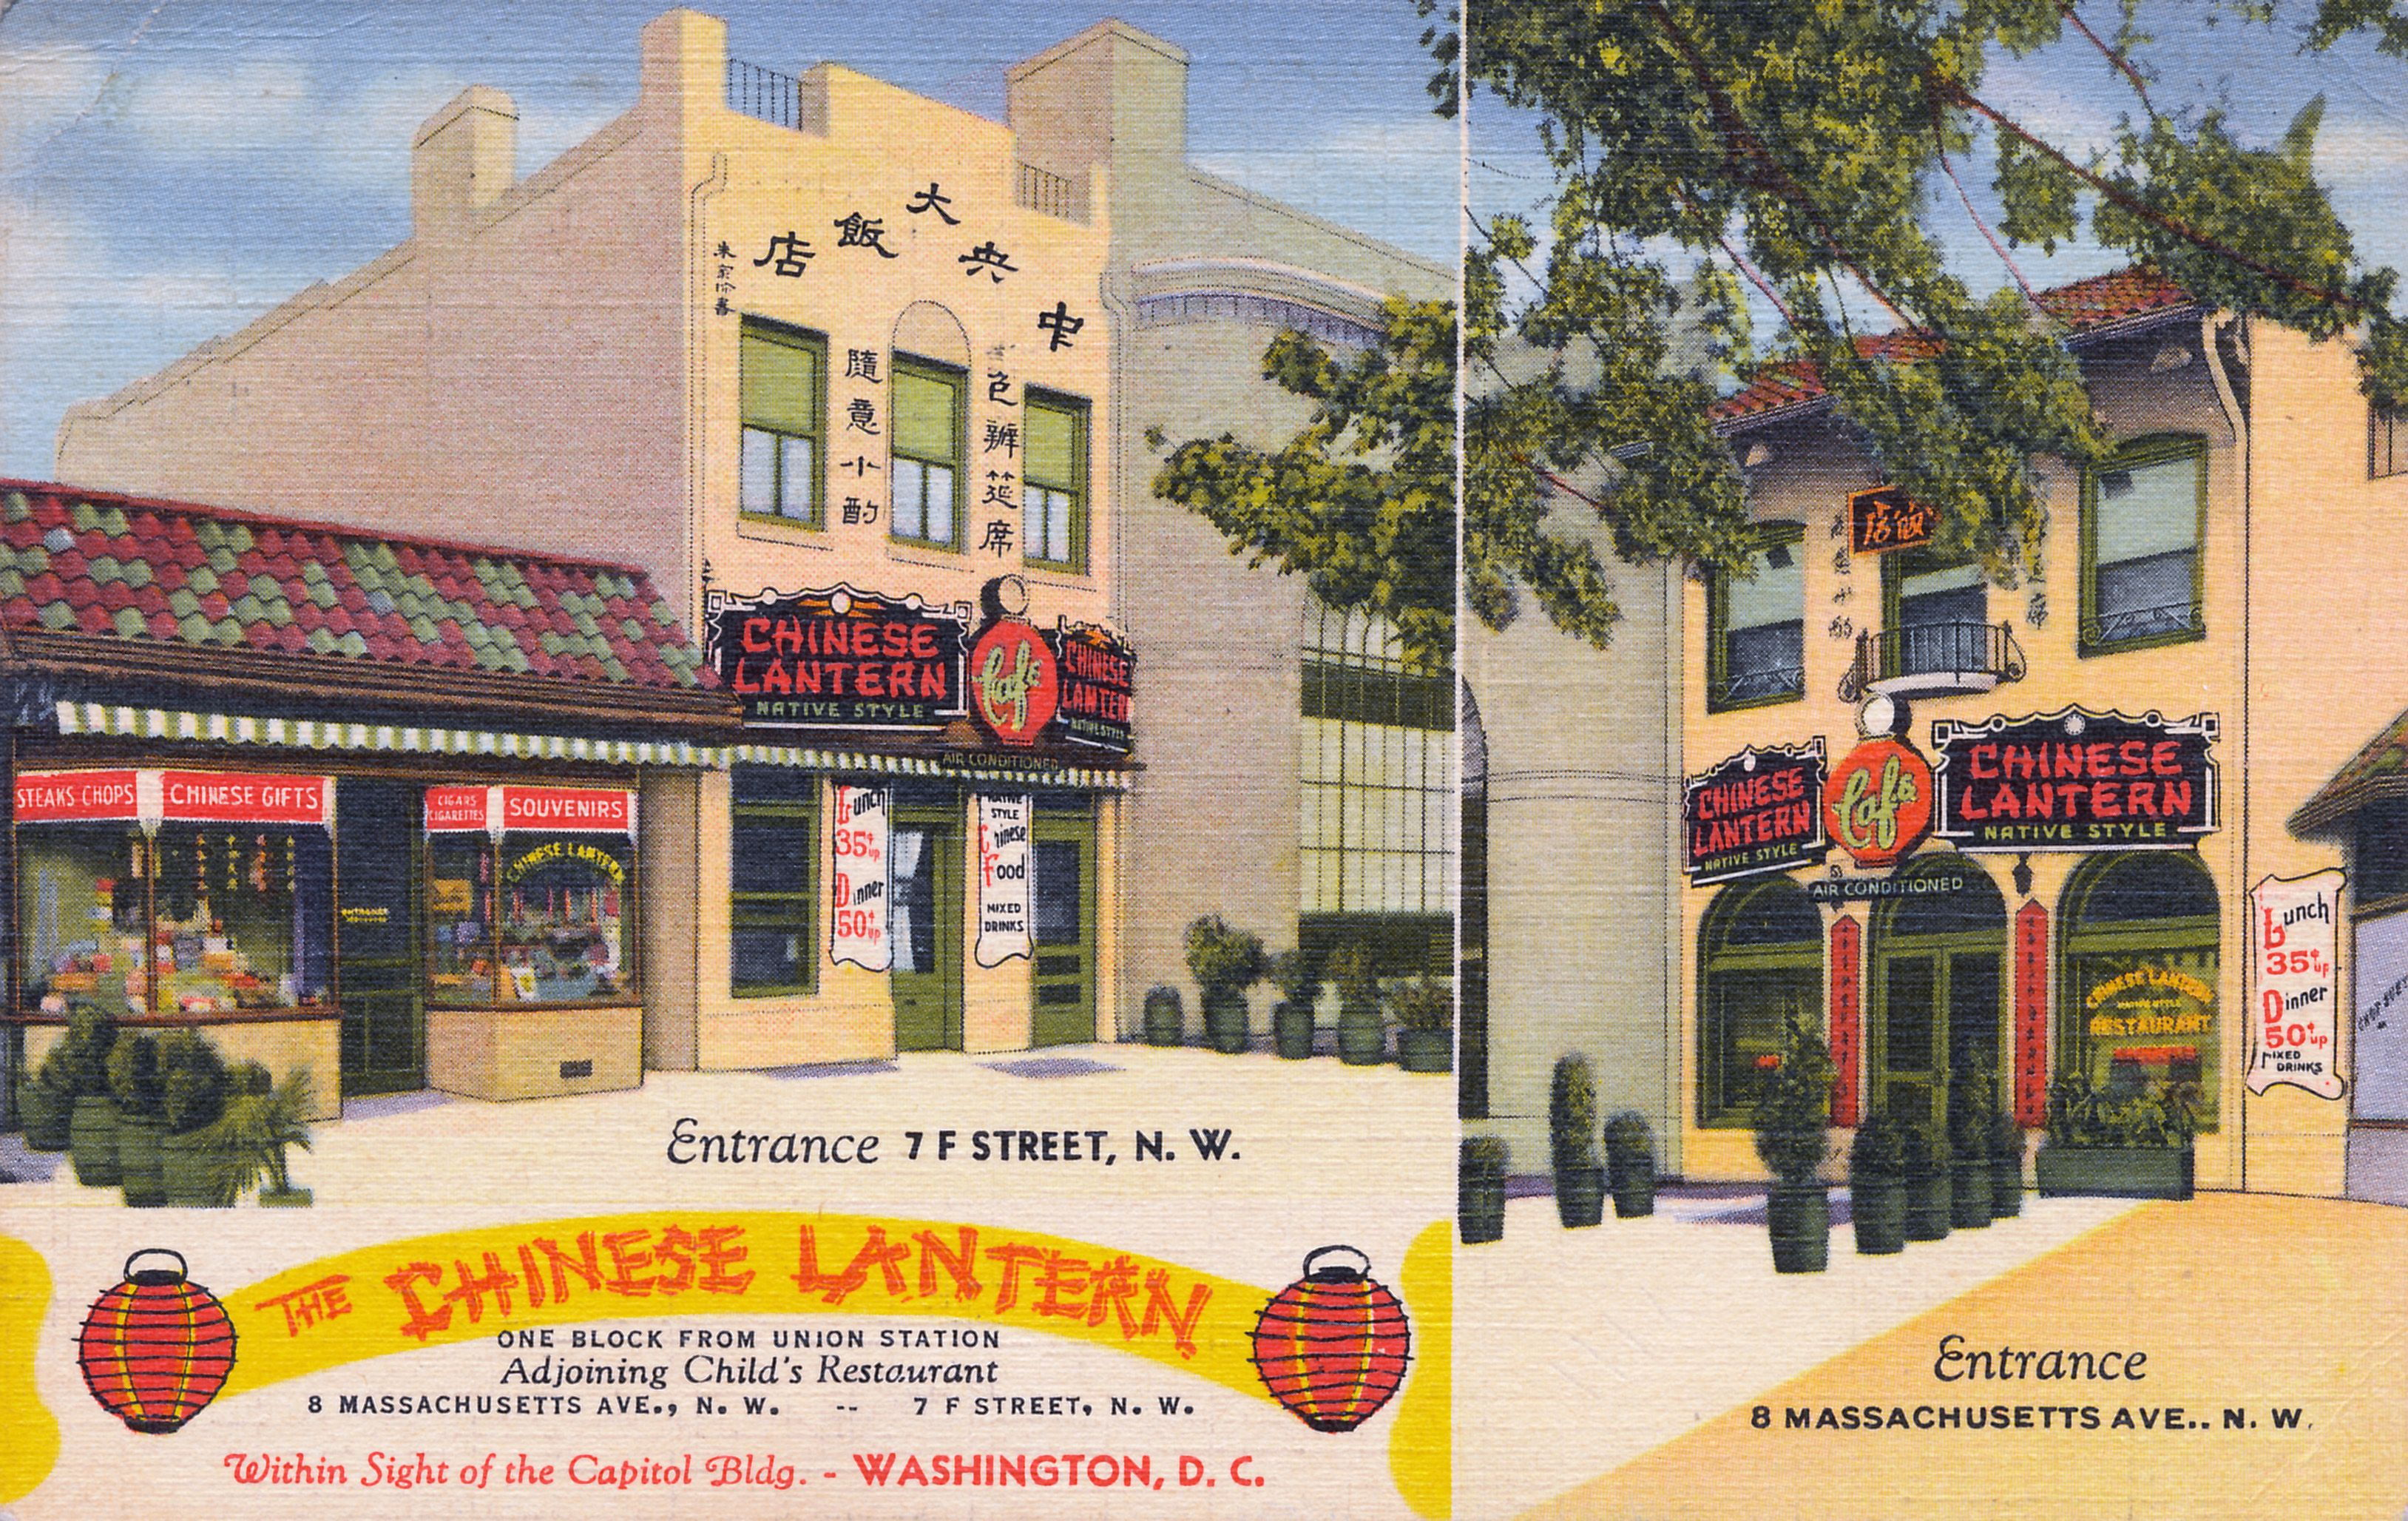 The Chinese Lantern Seen In This Circa 1943 Postcard Was In The Unit Block Of F Street Nw Across Washington Dc Restaurants Washington Dc Chinese Restaurant